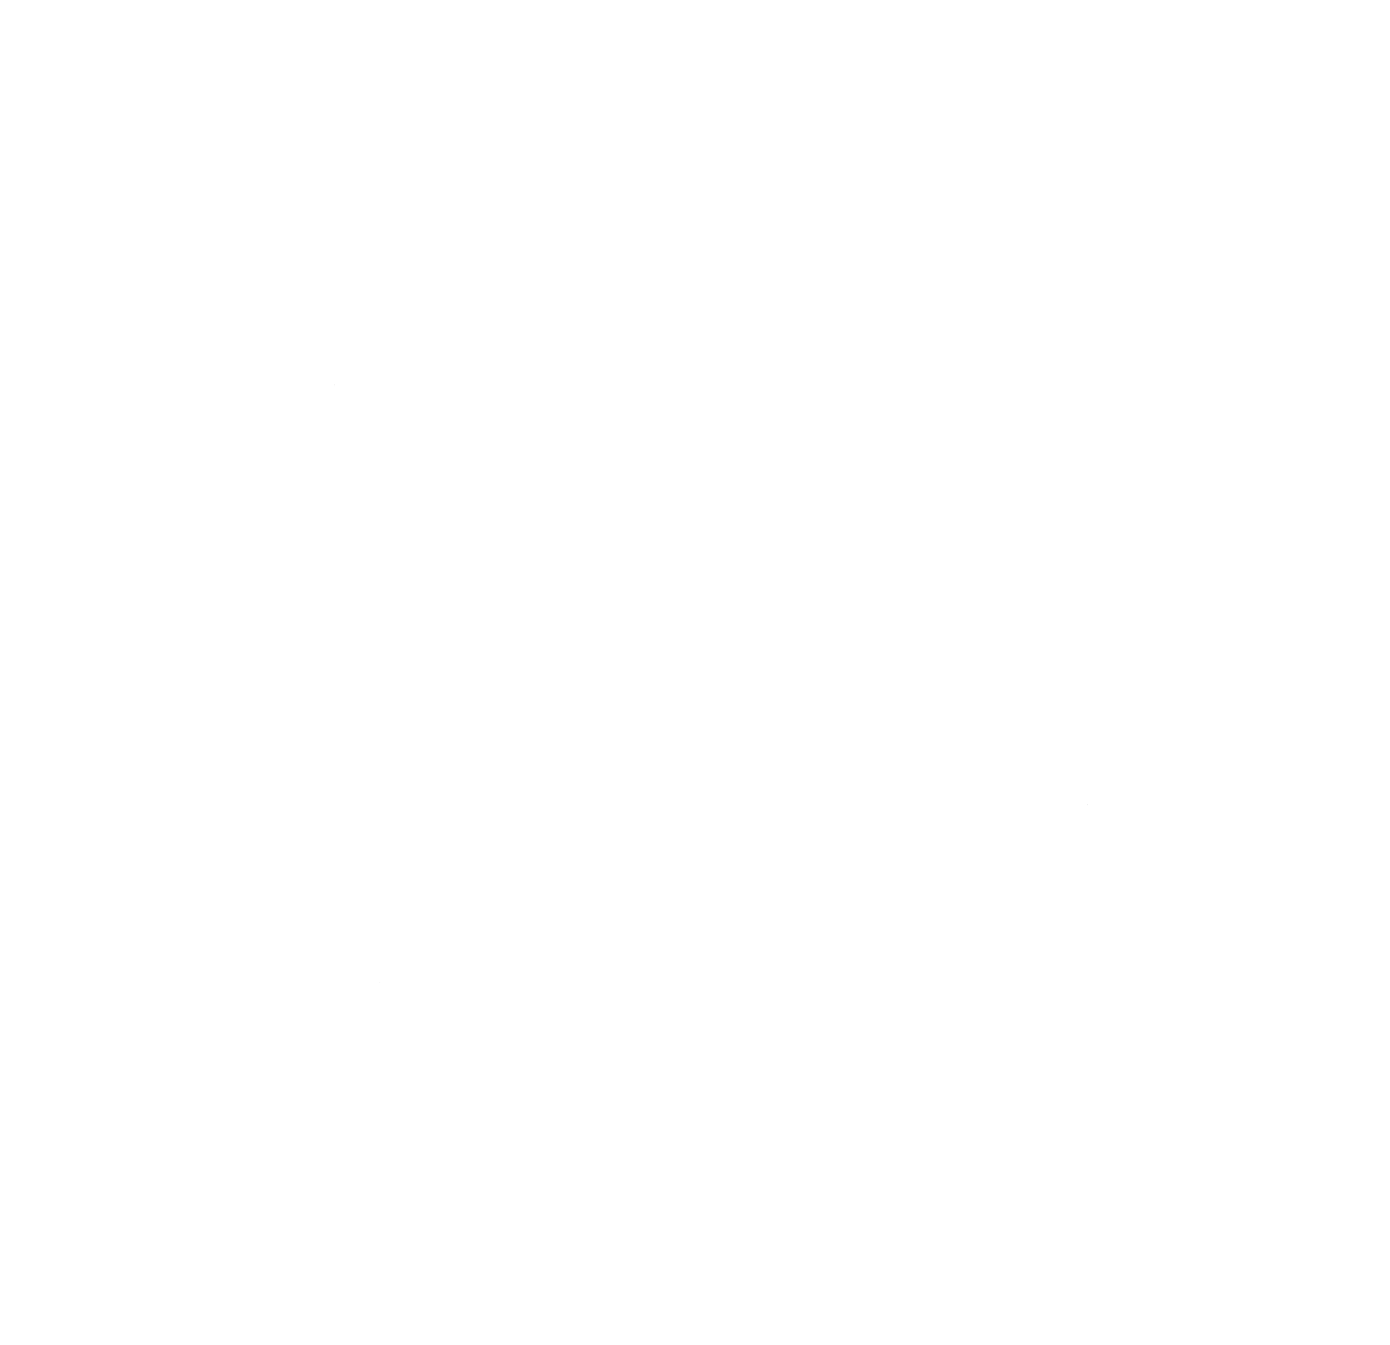 Nova Cidade Urban Analytics Lab is supporting World Data League